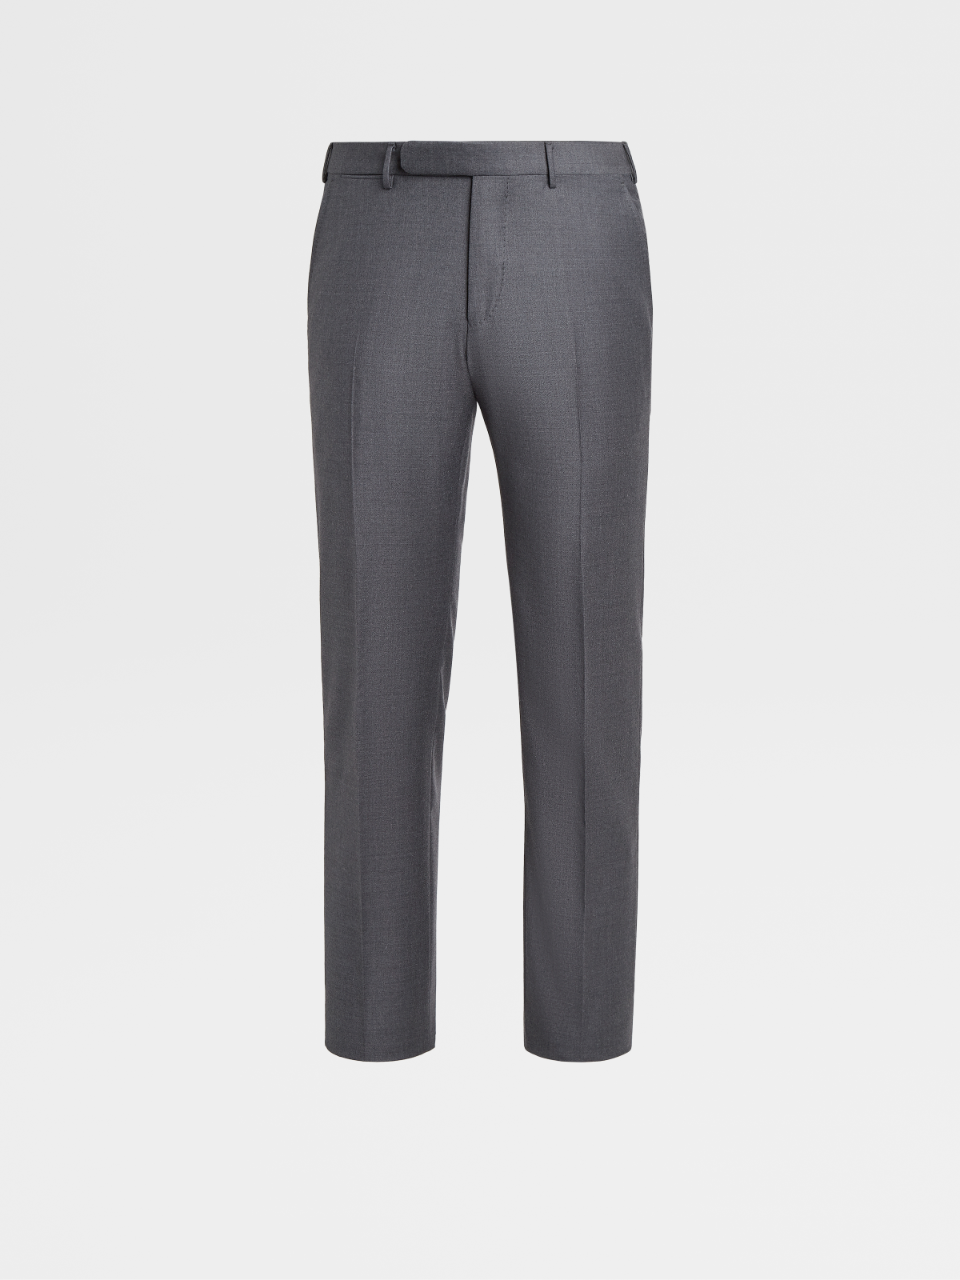 Grey Trofeo Pants